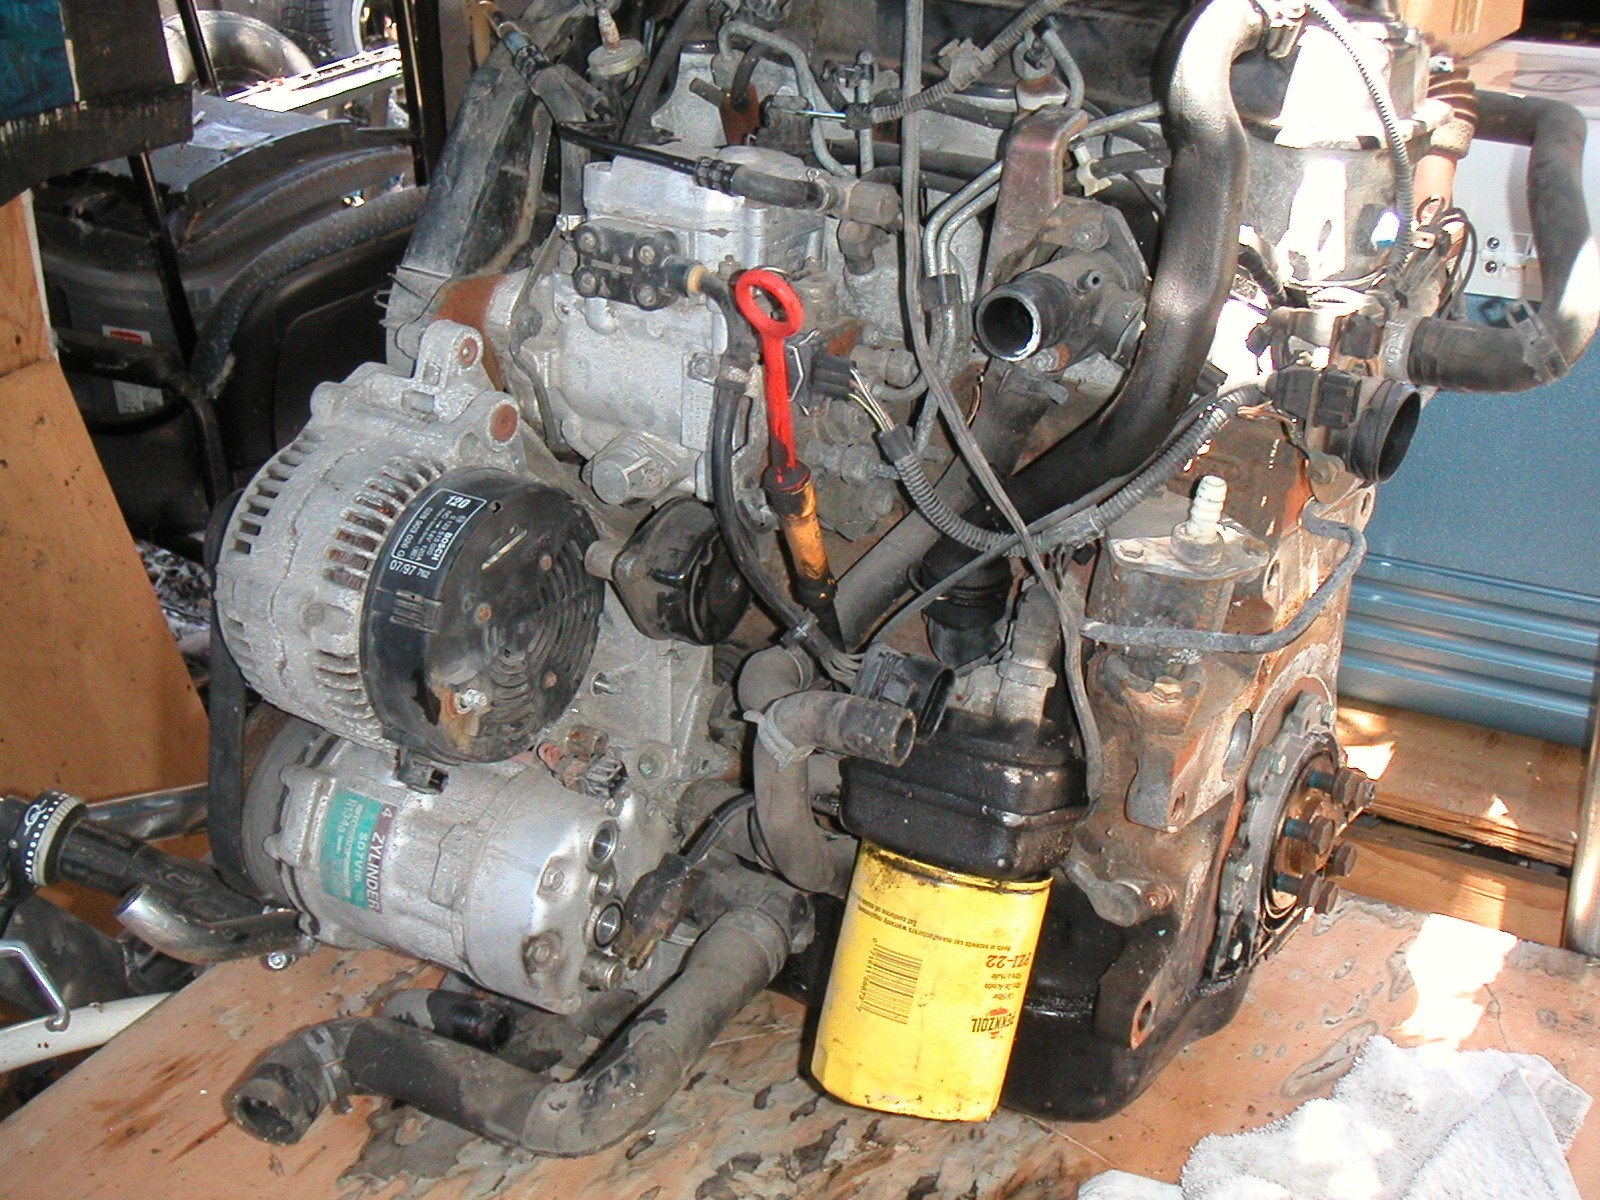 2001 Vw Jetta Vr6 Engine Diagram I Need Help Please 2001 Vw Jetta Vr6 Of 2001 Vw Jetta Vr6 Engine Diagram